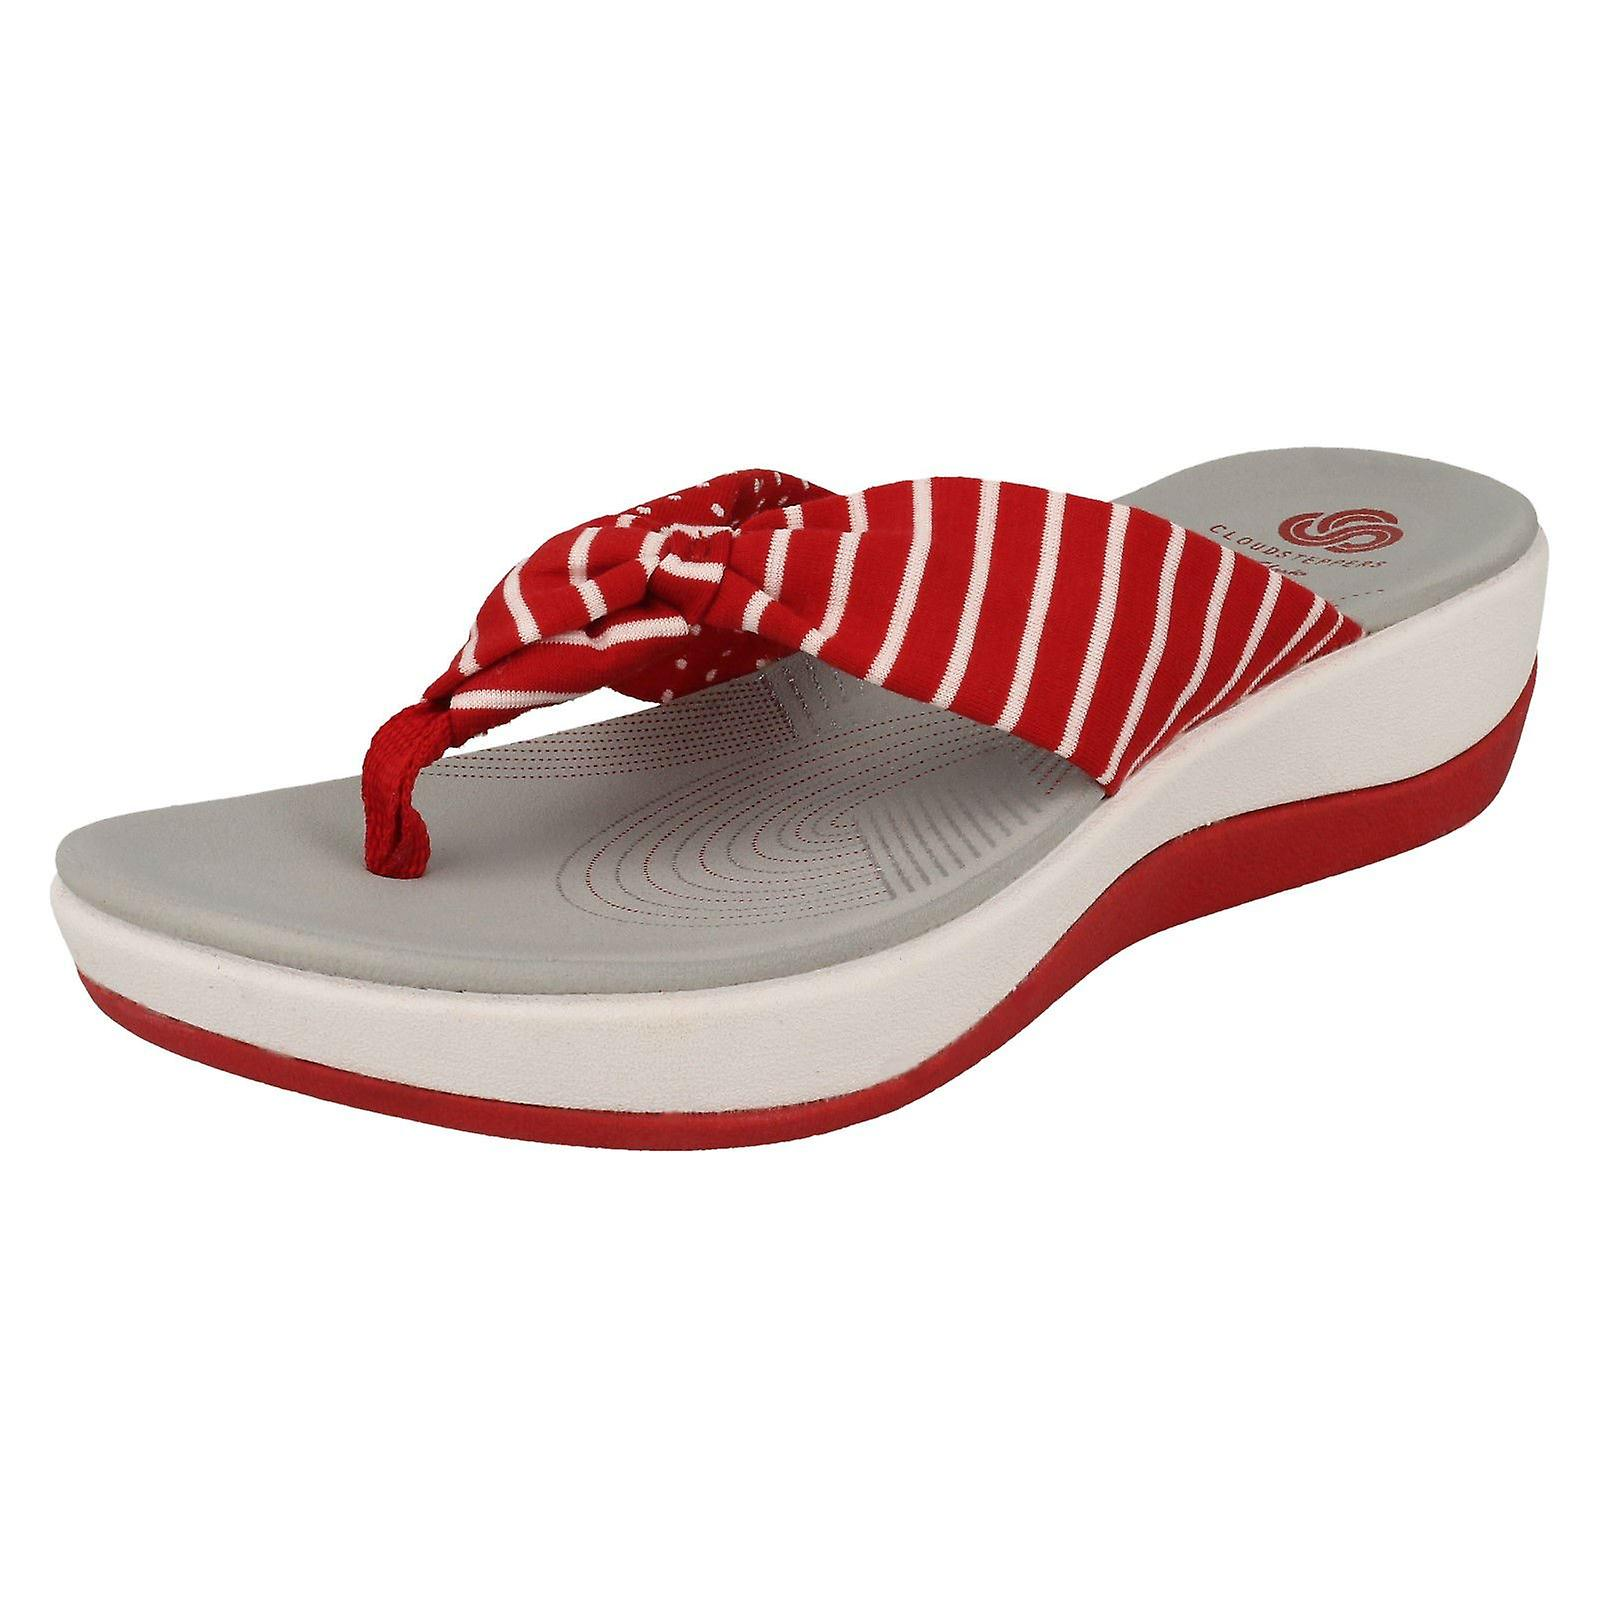 Ladies Clarks Cloudsteppers Toe Post Summer Sandals Arla Glison - Red Combi  Textile - UK Size